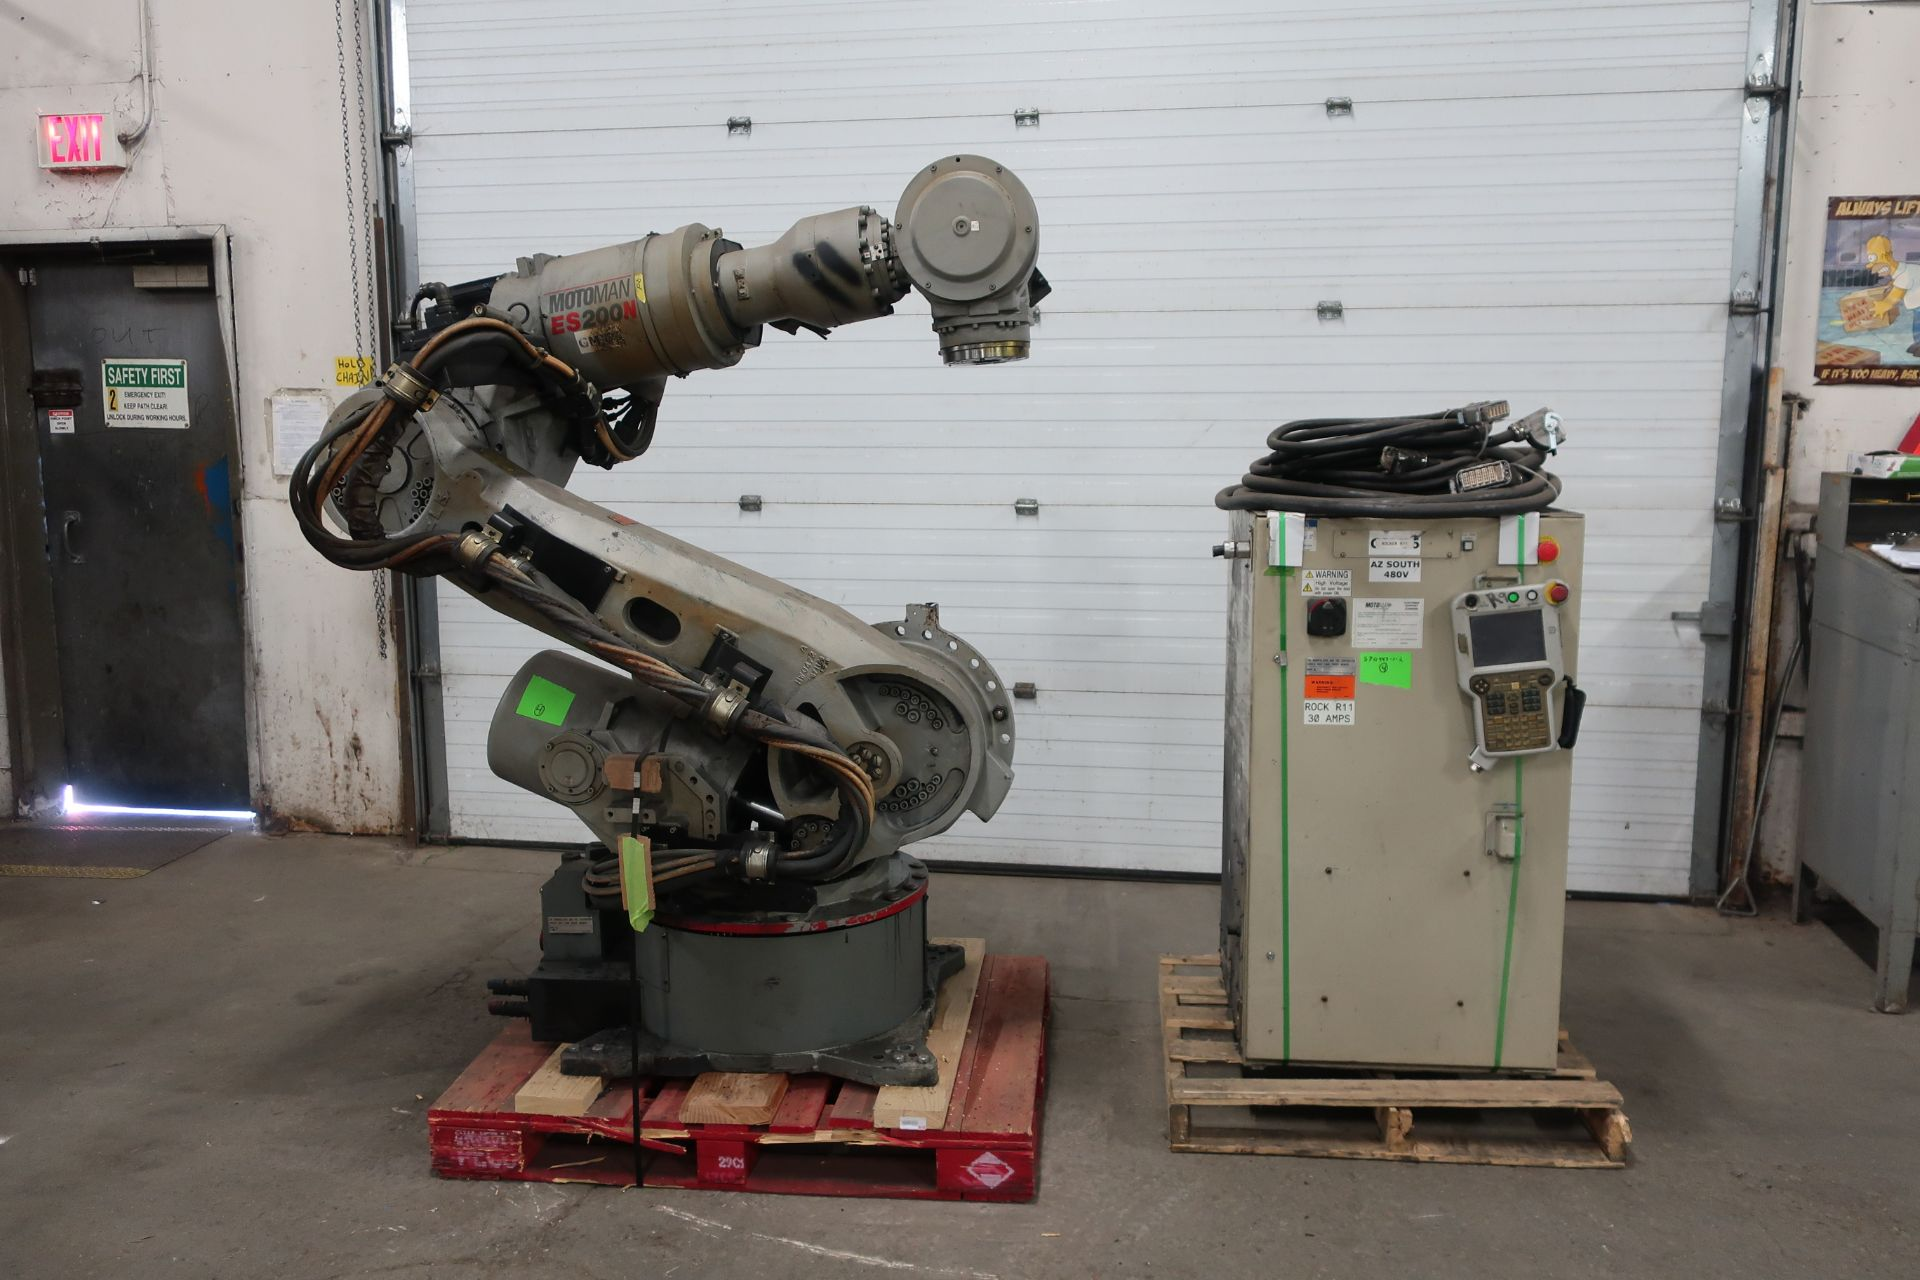 2008 Motoman ES200N Robot 200kg Capacity with Controller COMPLETE with Teach Pendant, Cables, LOW